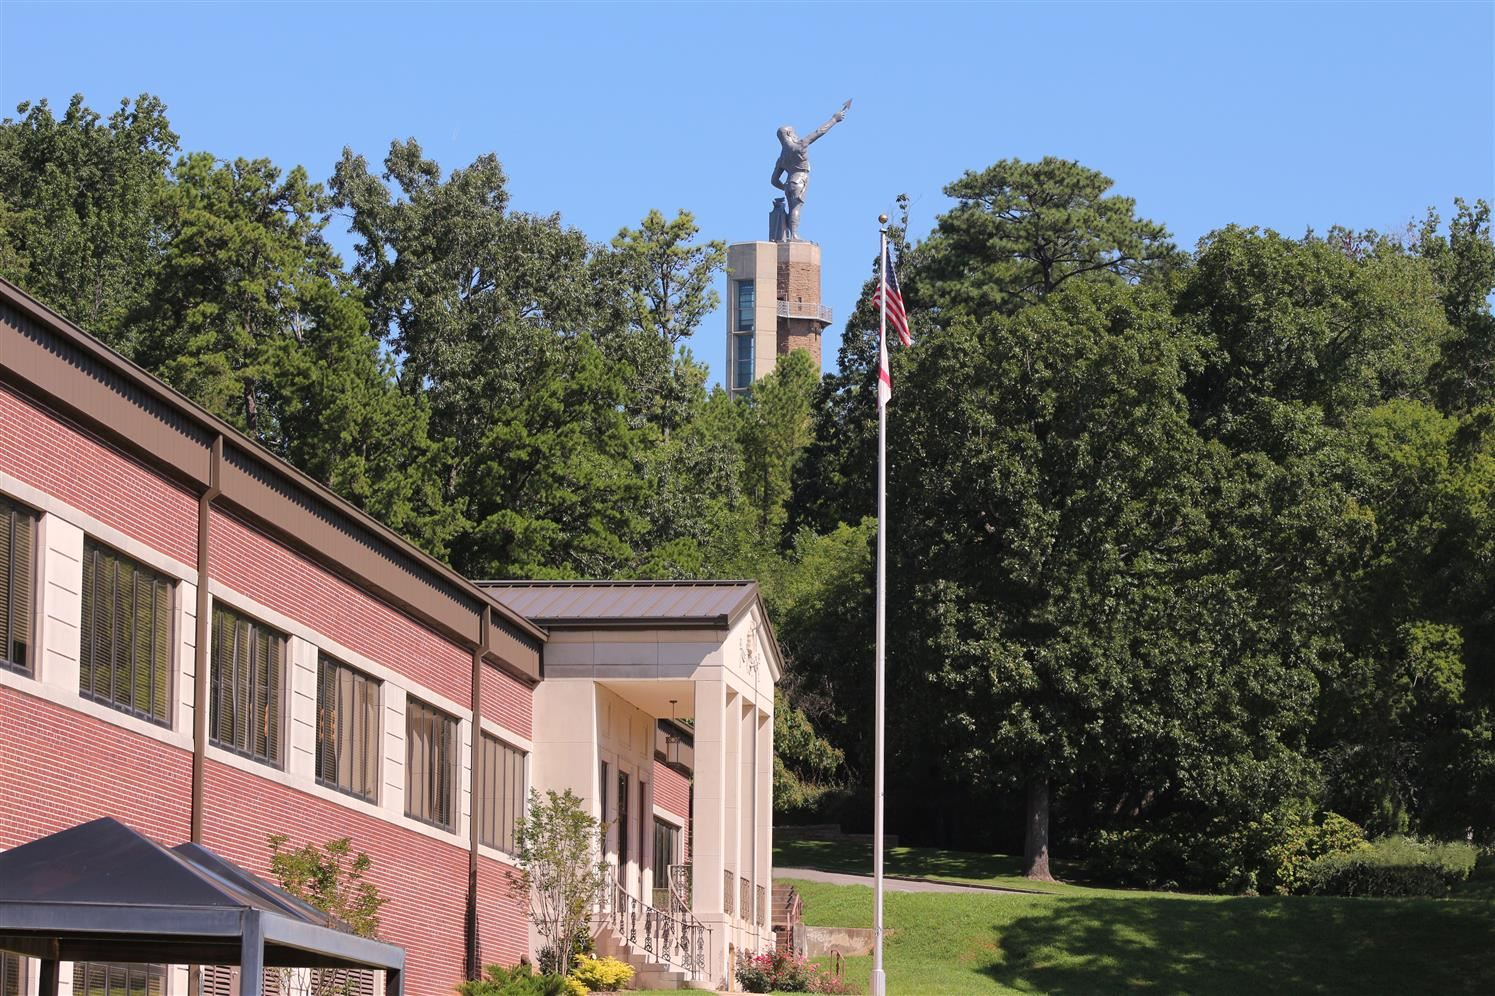 JEFCOED central office building with the Vulcan Statue in the background.